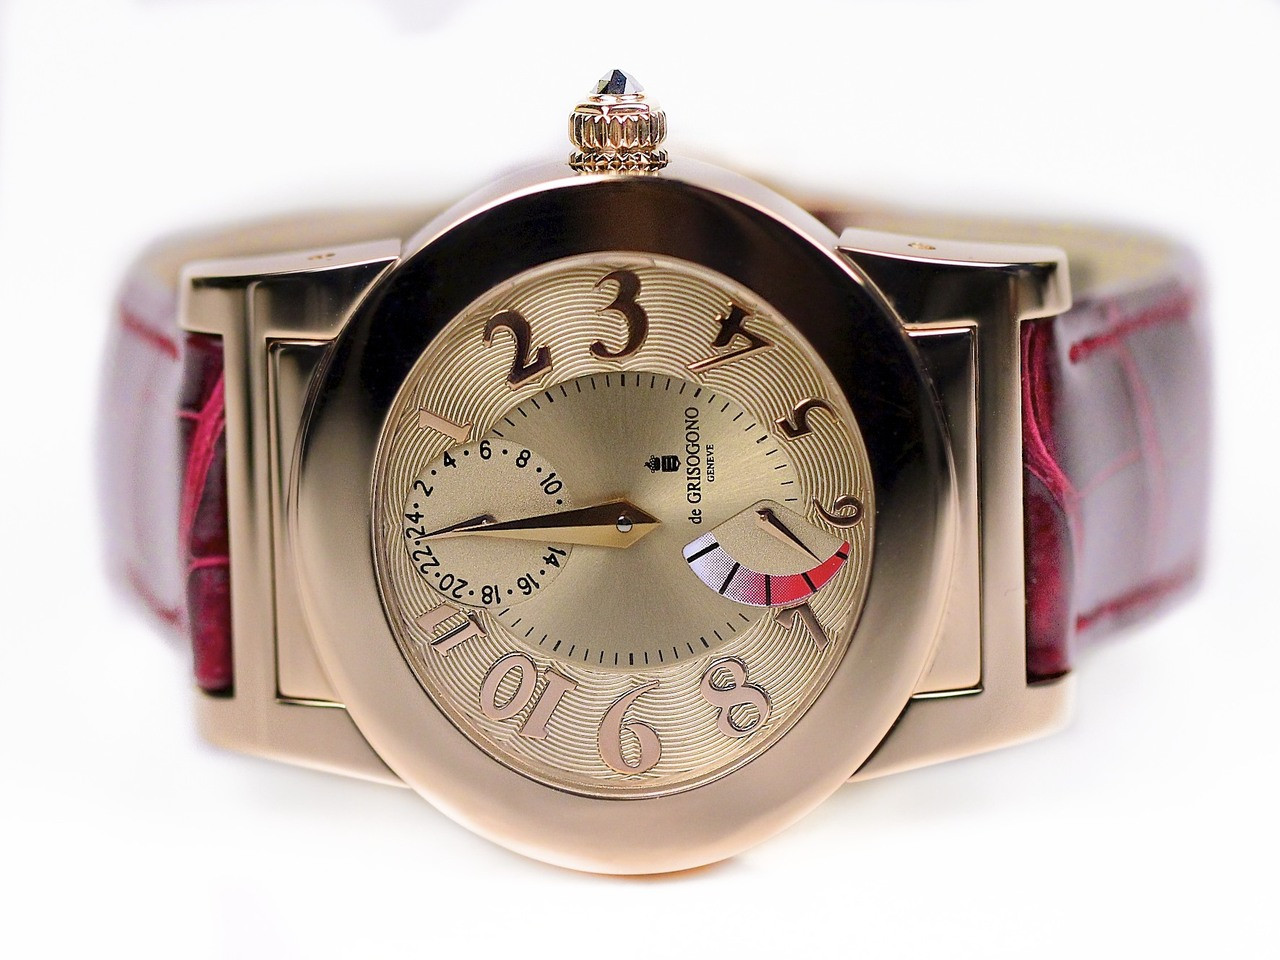 Stunning Ladies de Grisogono Watch done in solid Rose Gold on a Burgundee Leather Strap and Deployment Buckle - Tondo RM N52/A  - Legend of Time - Chicago Watch Center